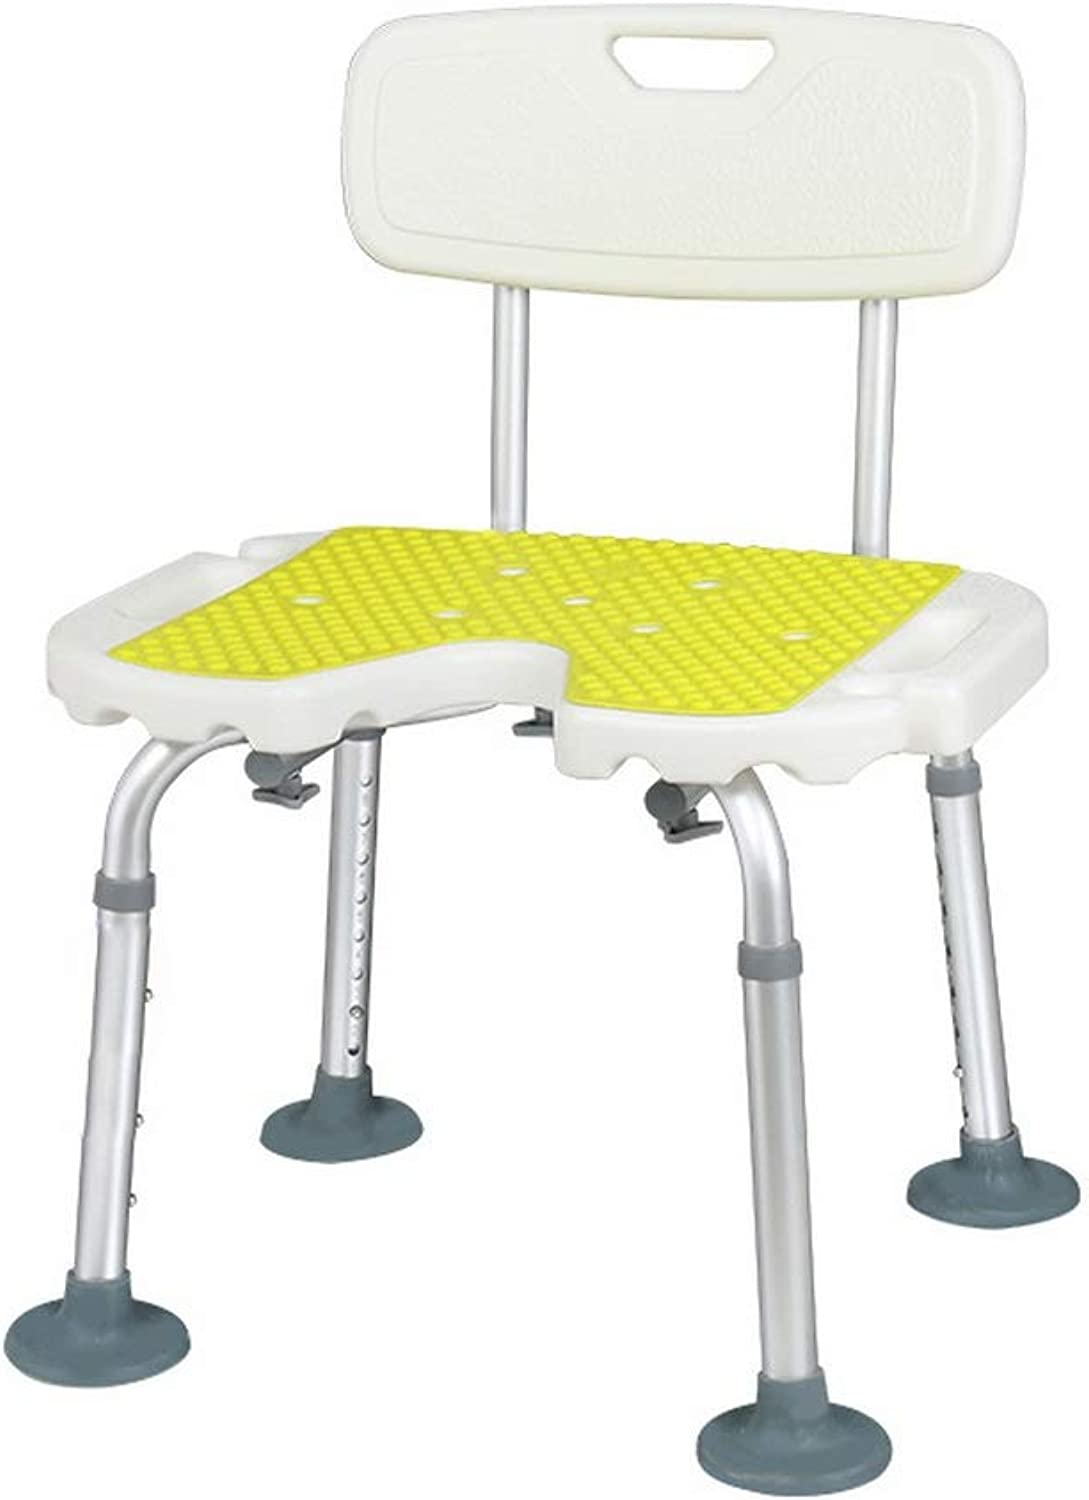 Shower Seat, Big Pad for The Elderly, Non-Slip Bath Chair, Aged Disabled Pregnant Adult with Backrest Shower Stool